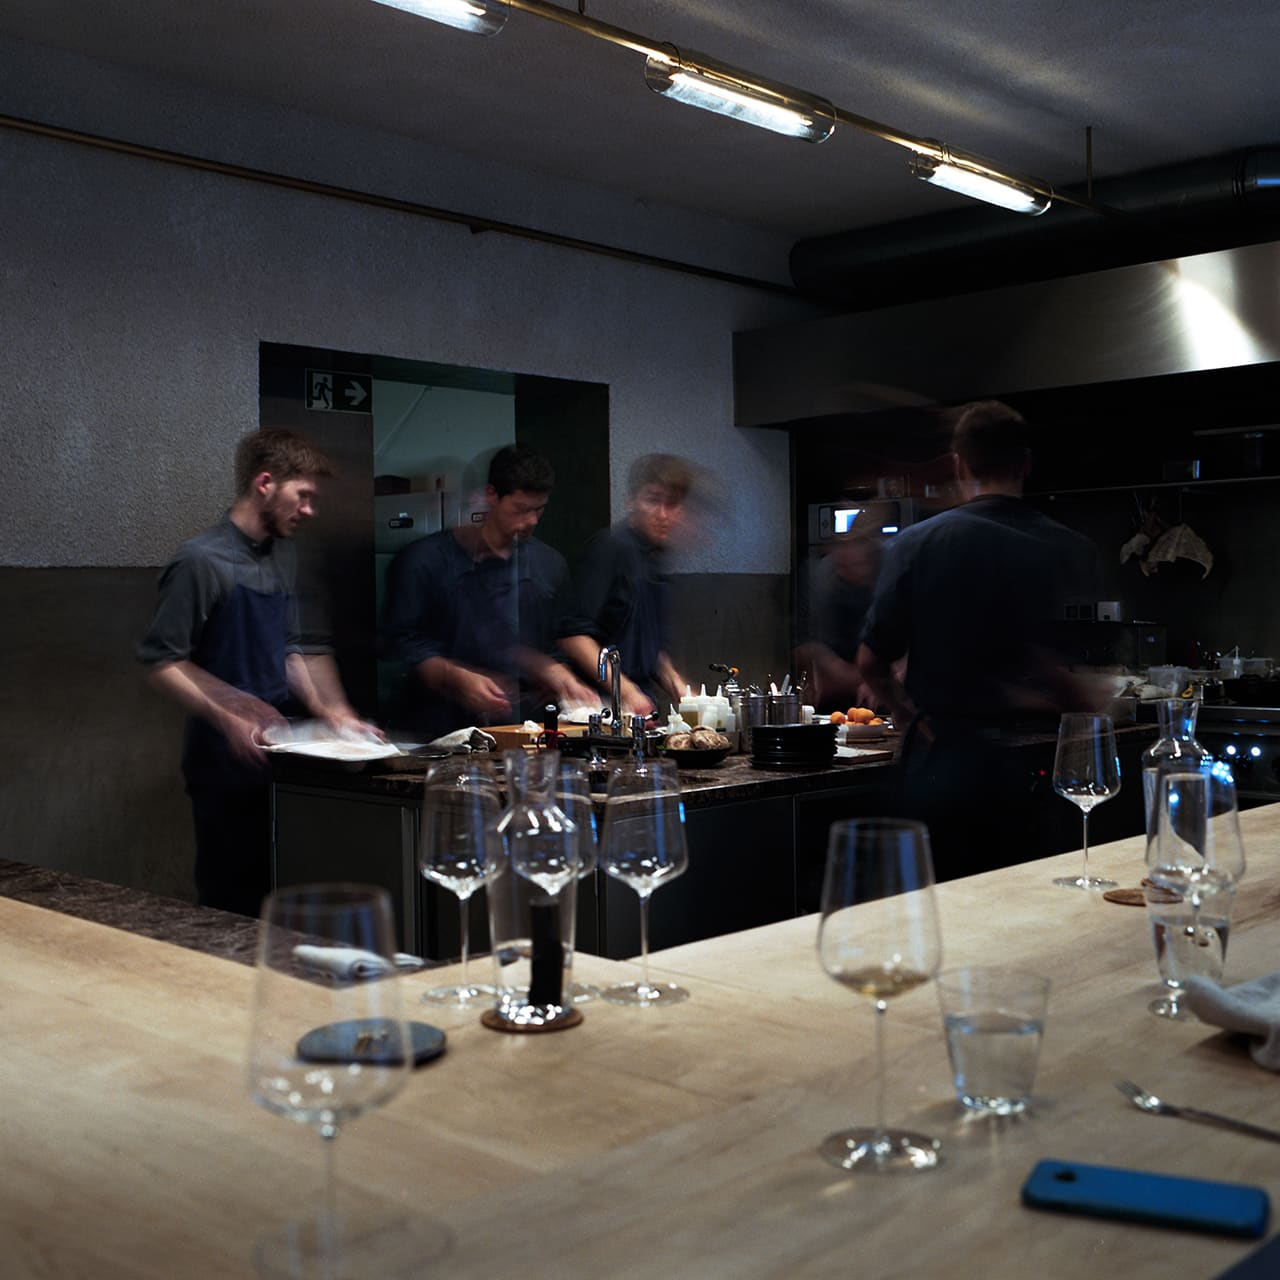 The restaurant is an open bar kitchen. Photo credit: Maidje Meergans